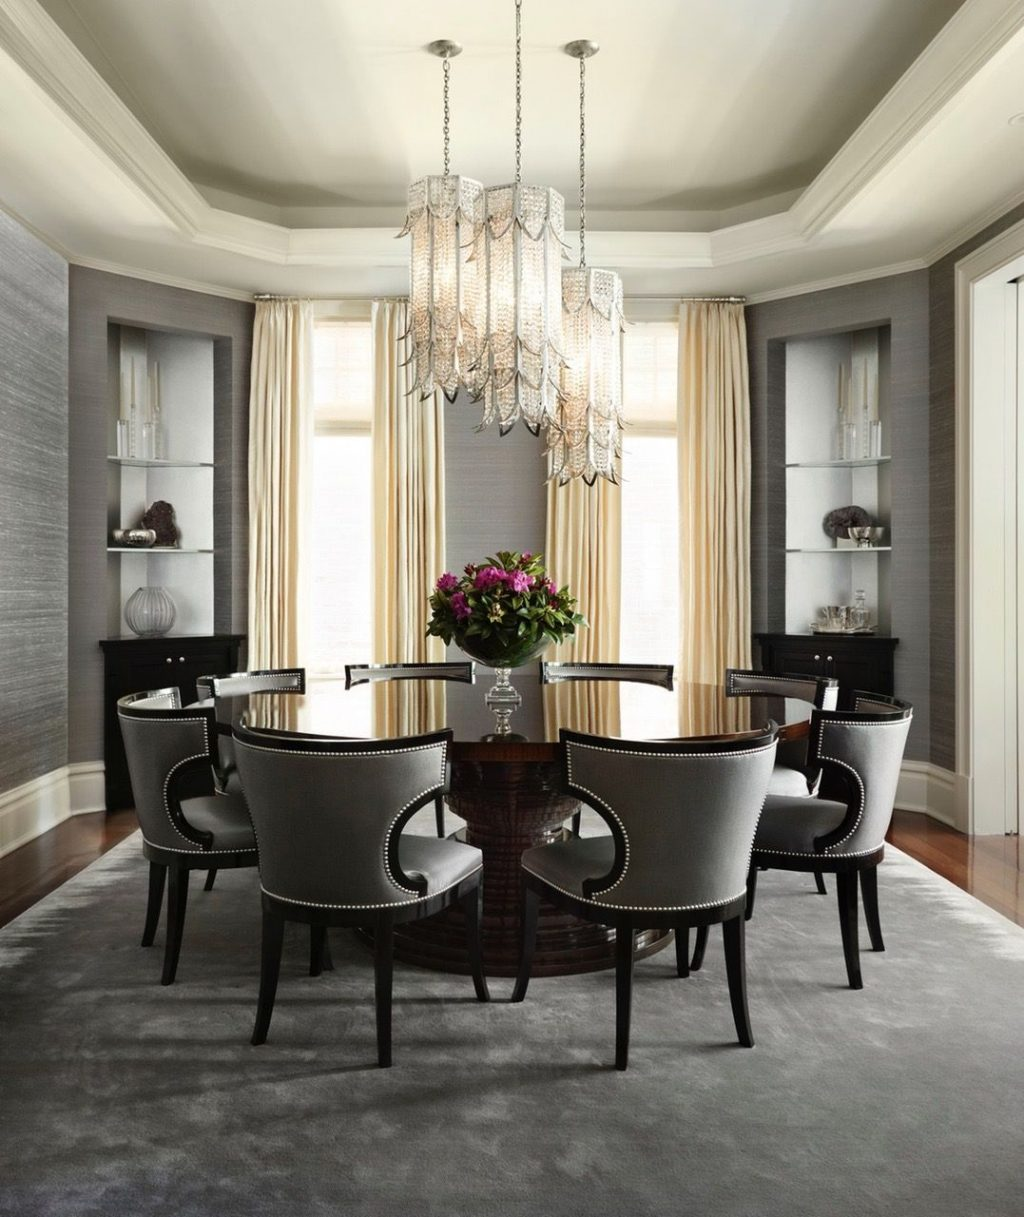 Pin Aljohara Almodaimigh On Family Room Pinterest Dining Room